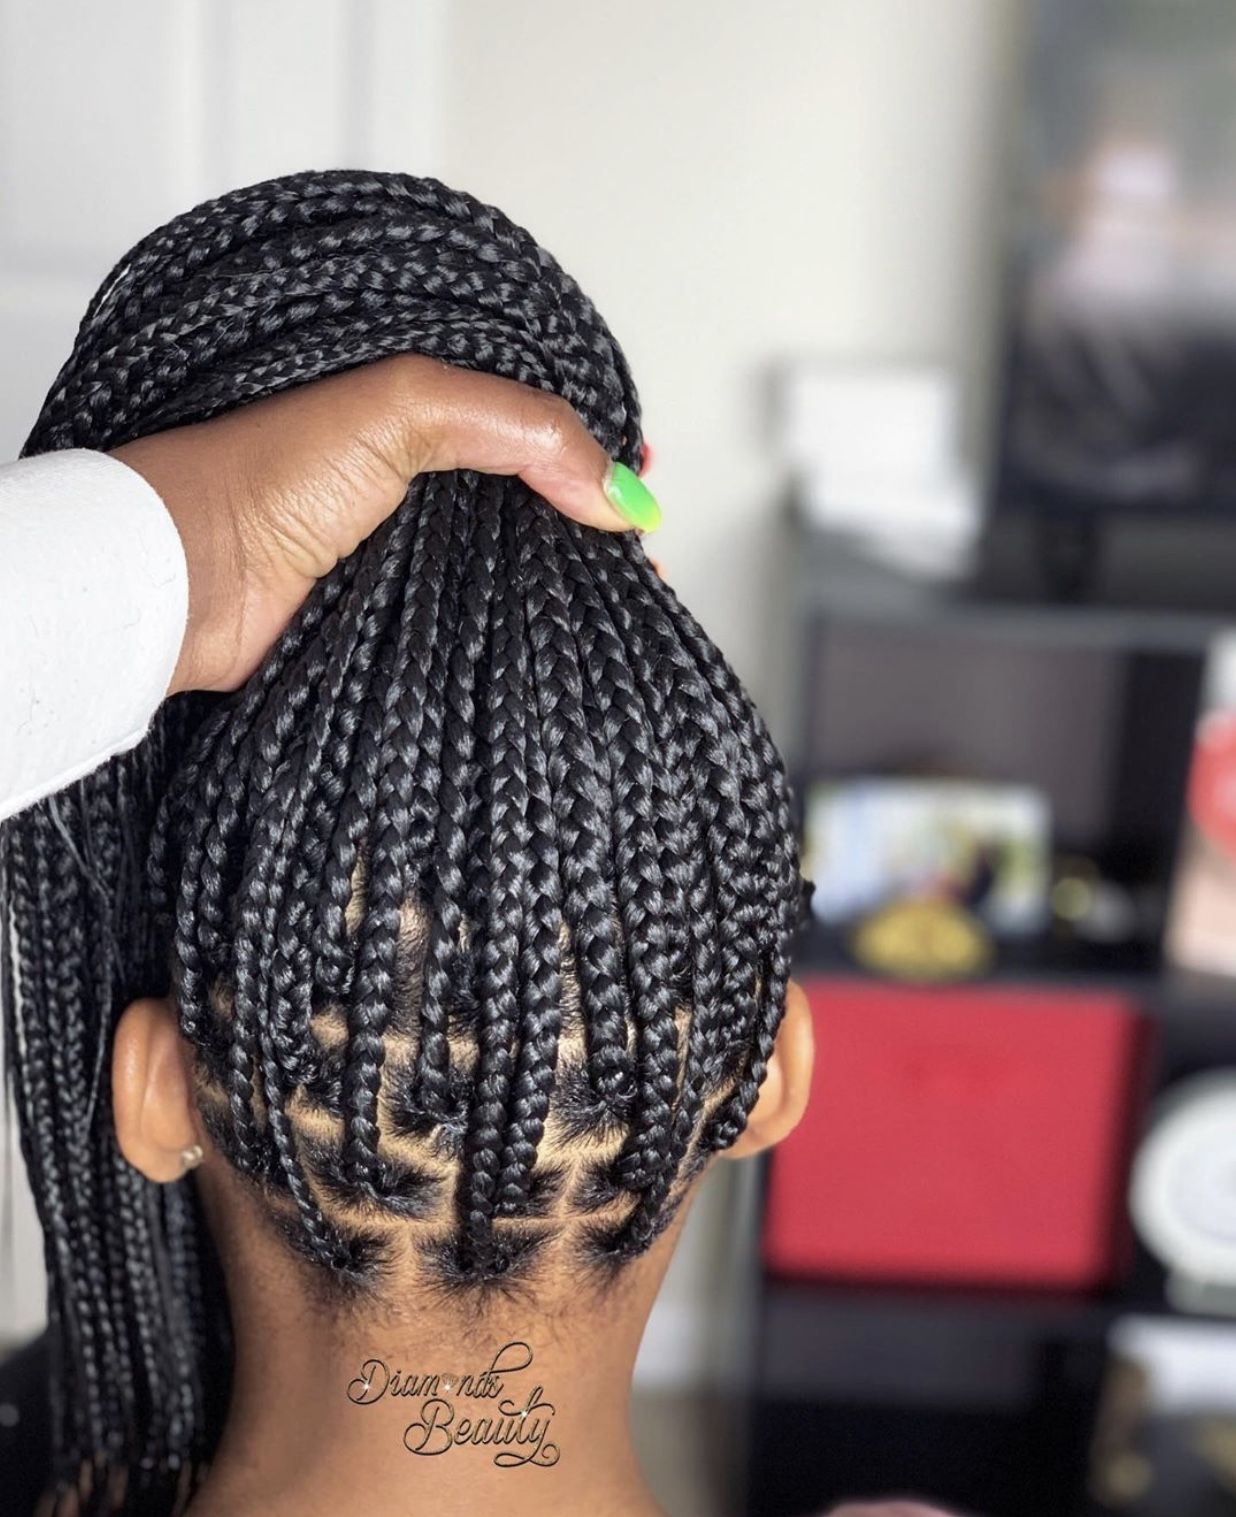 Beautiful Braided Hairstyles 2021 hairstyleforblackwomen.net 1